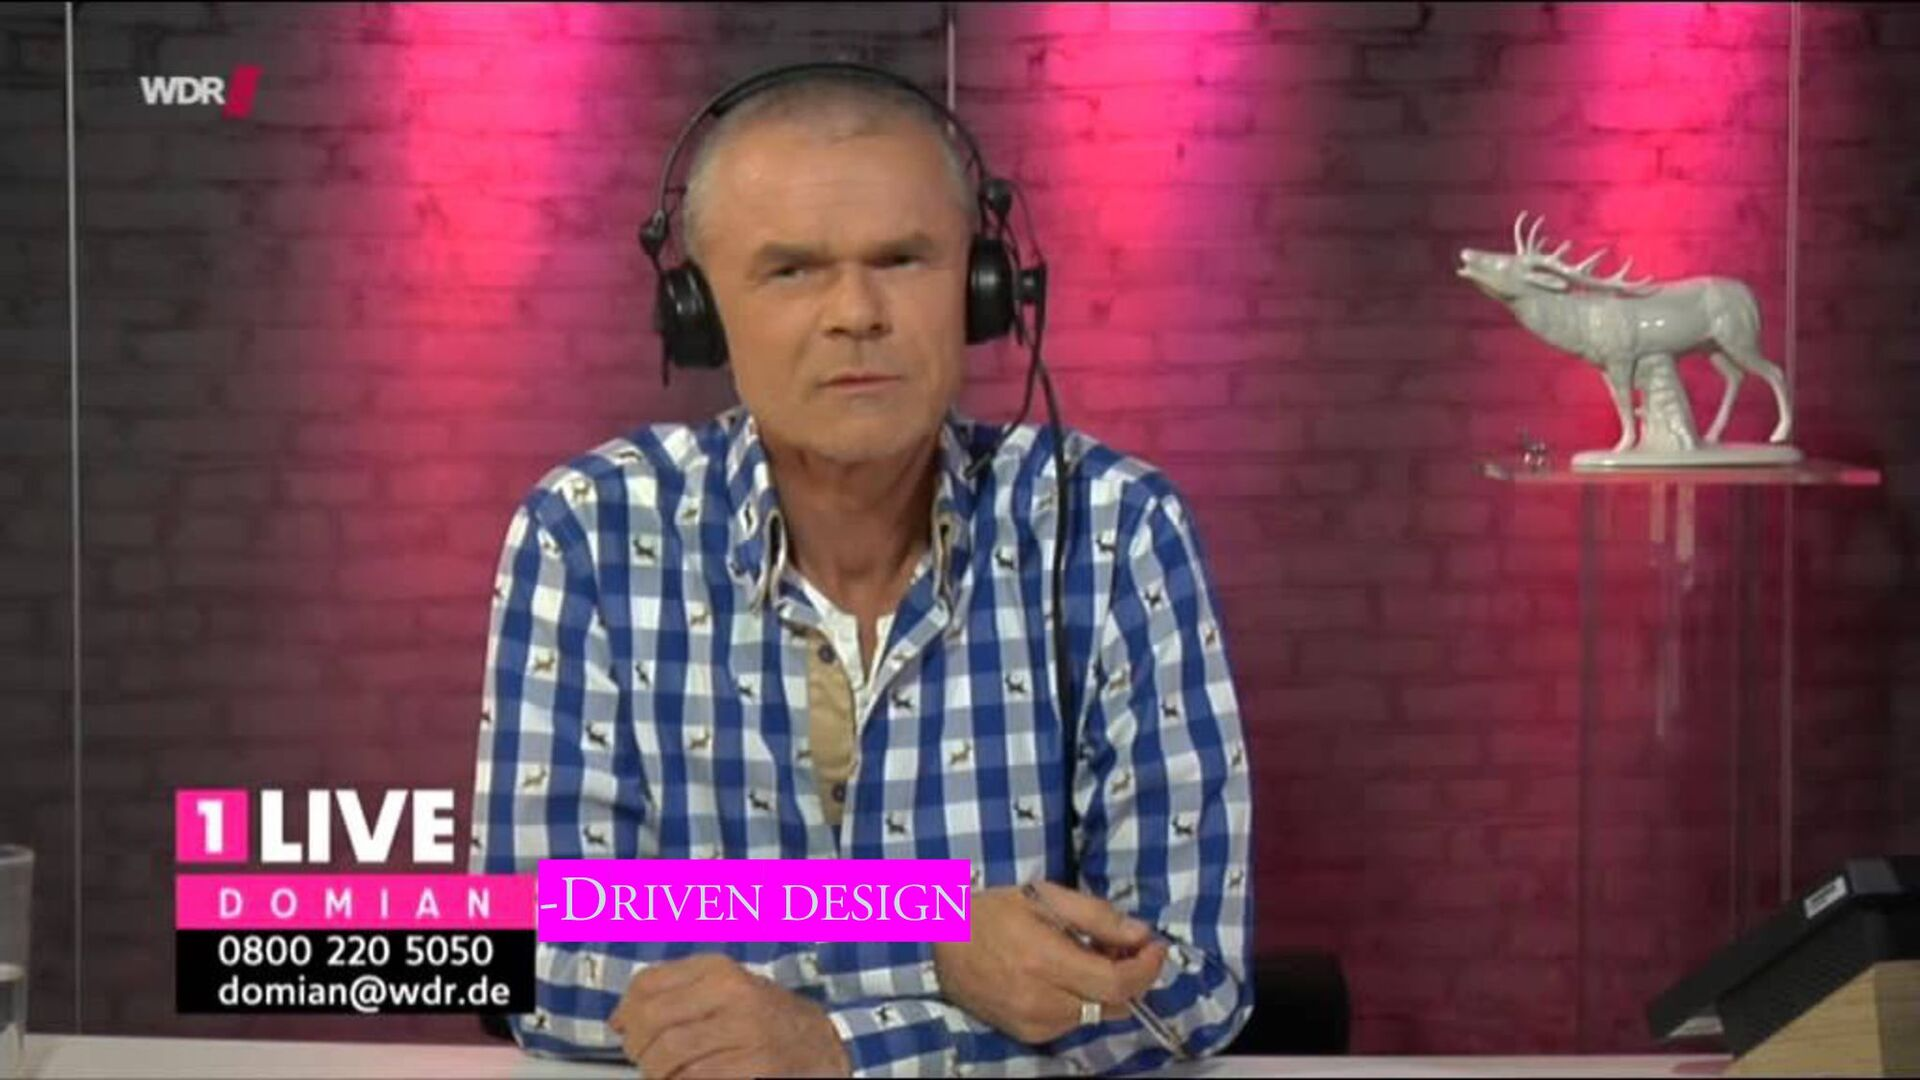 @hschwentner Too Big to be understood as a whole